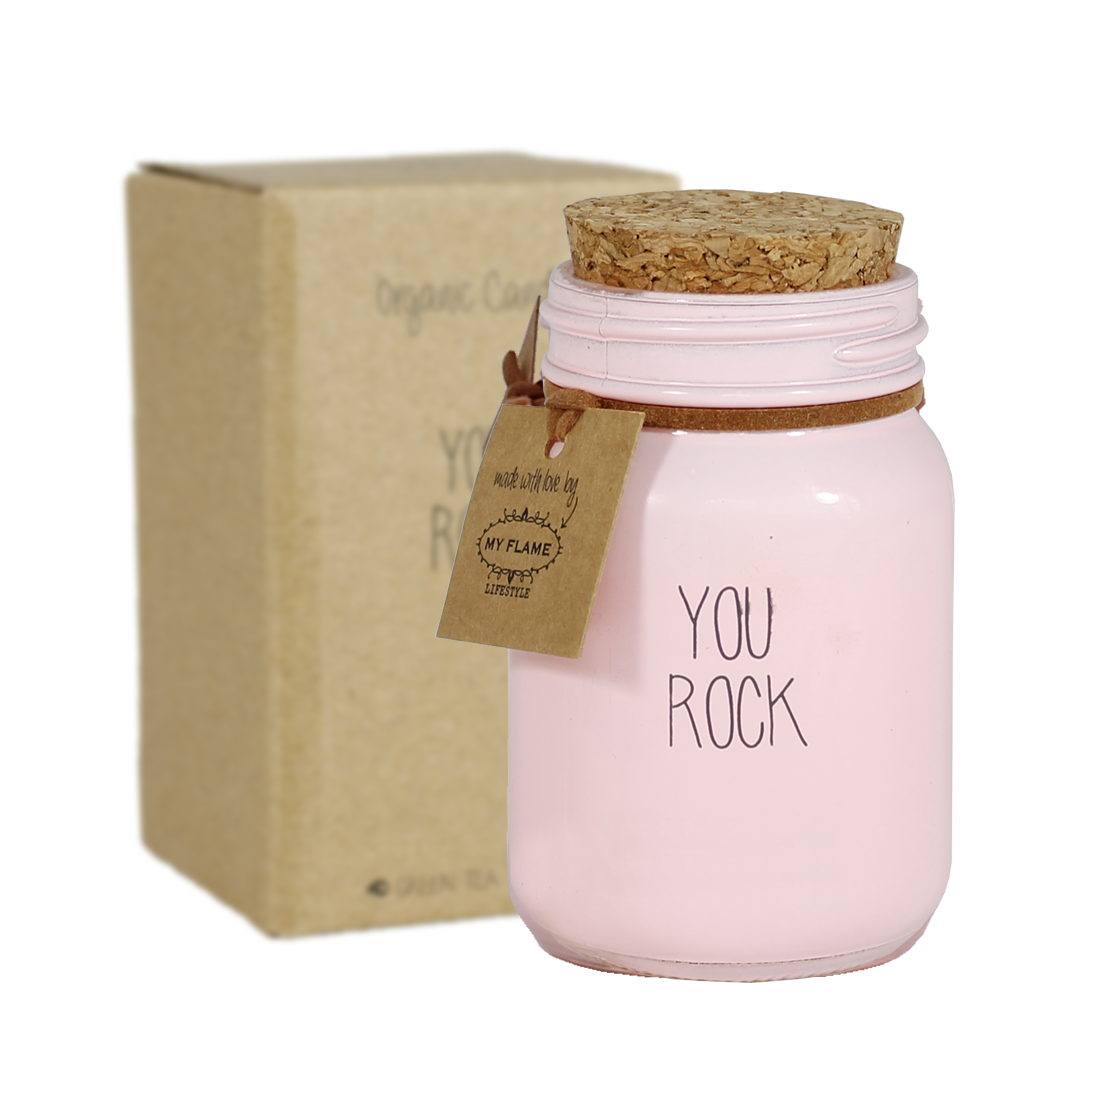 My Flame Lifestyle SOY CANDLE - YOU ROCK - SCENT: SANDALWOOD SPICE